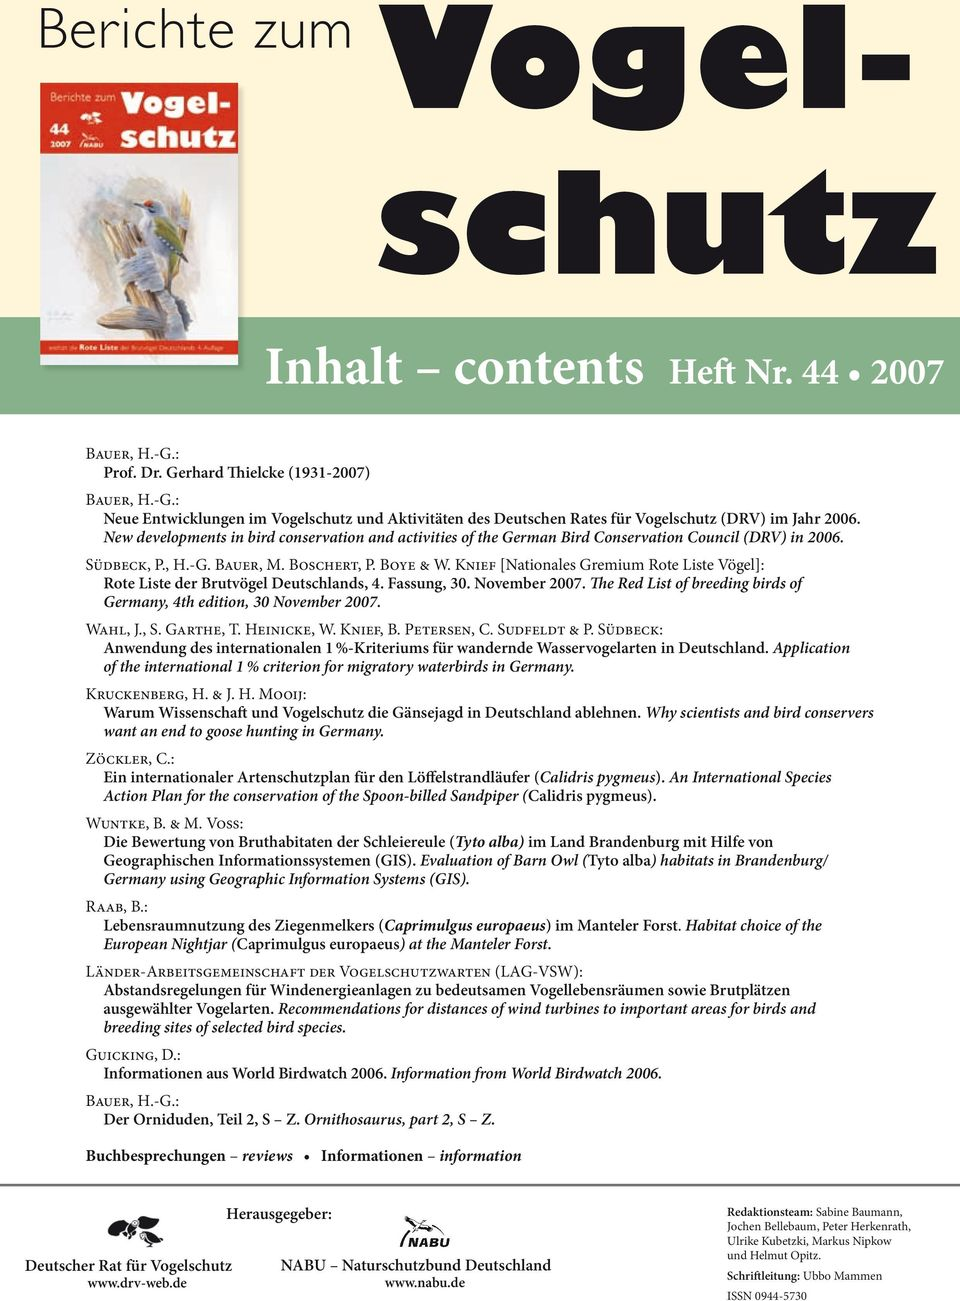 New developments in bird conservation and activities of the German Bird Conserva ti on Council (DRV) in 2006. Südbeck, P., H.-G. Bauer, M. Boschert, P. Boye & W.